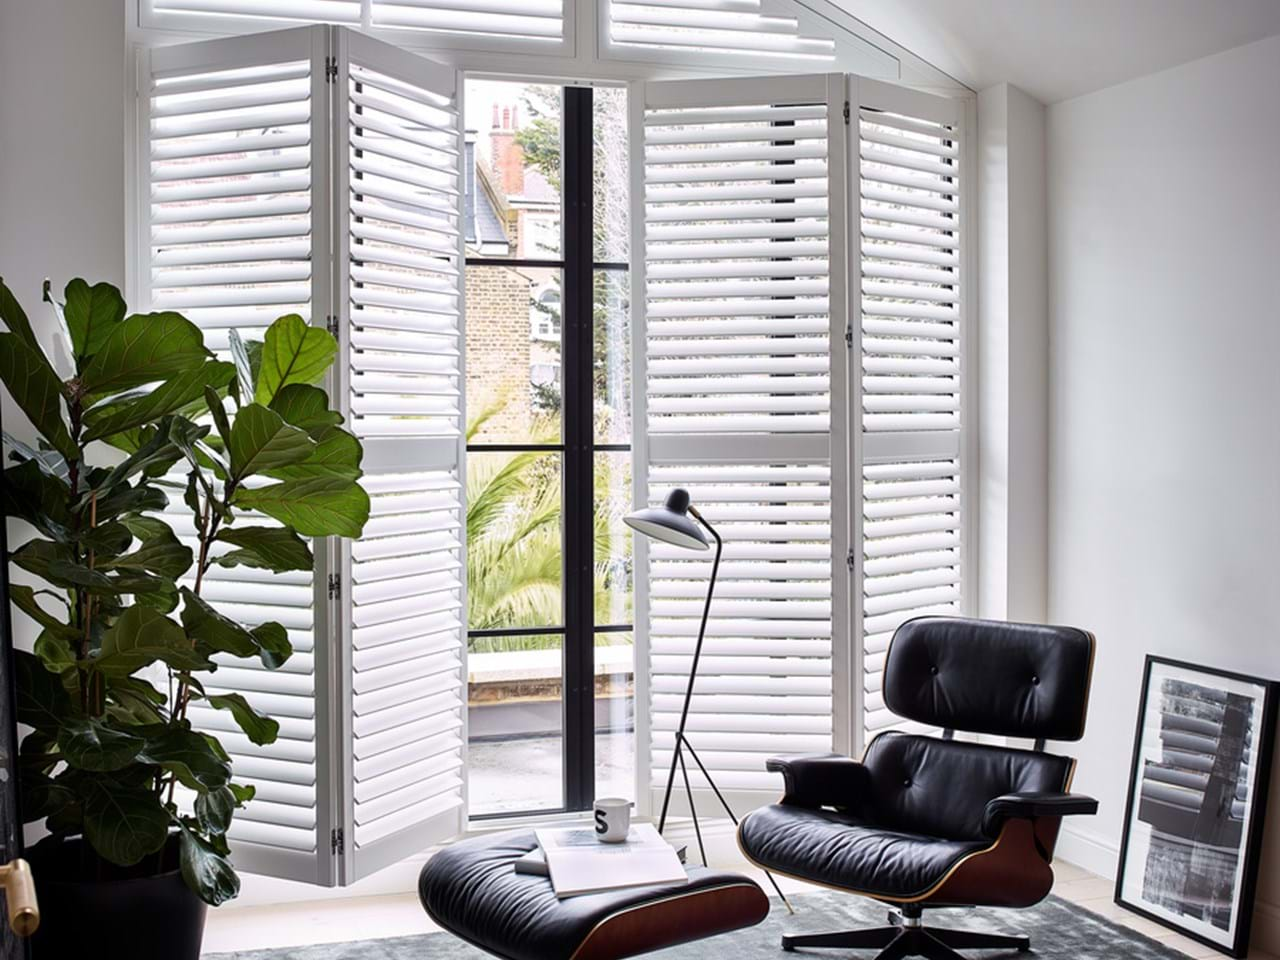 White tracked shutters fitted to a rectangular window to a slanted shaped window in a living room featuring a black armchair, footrest and plant